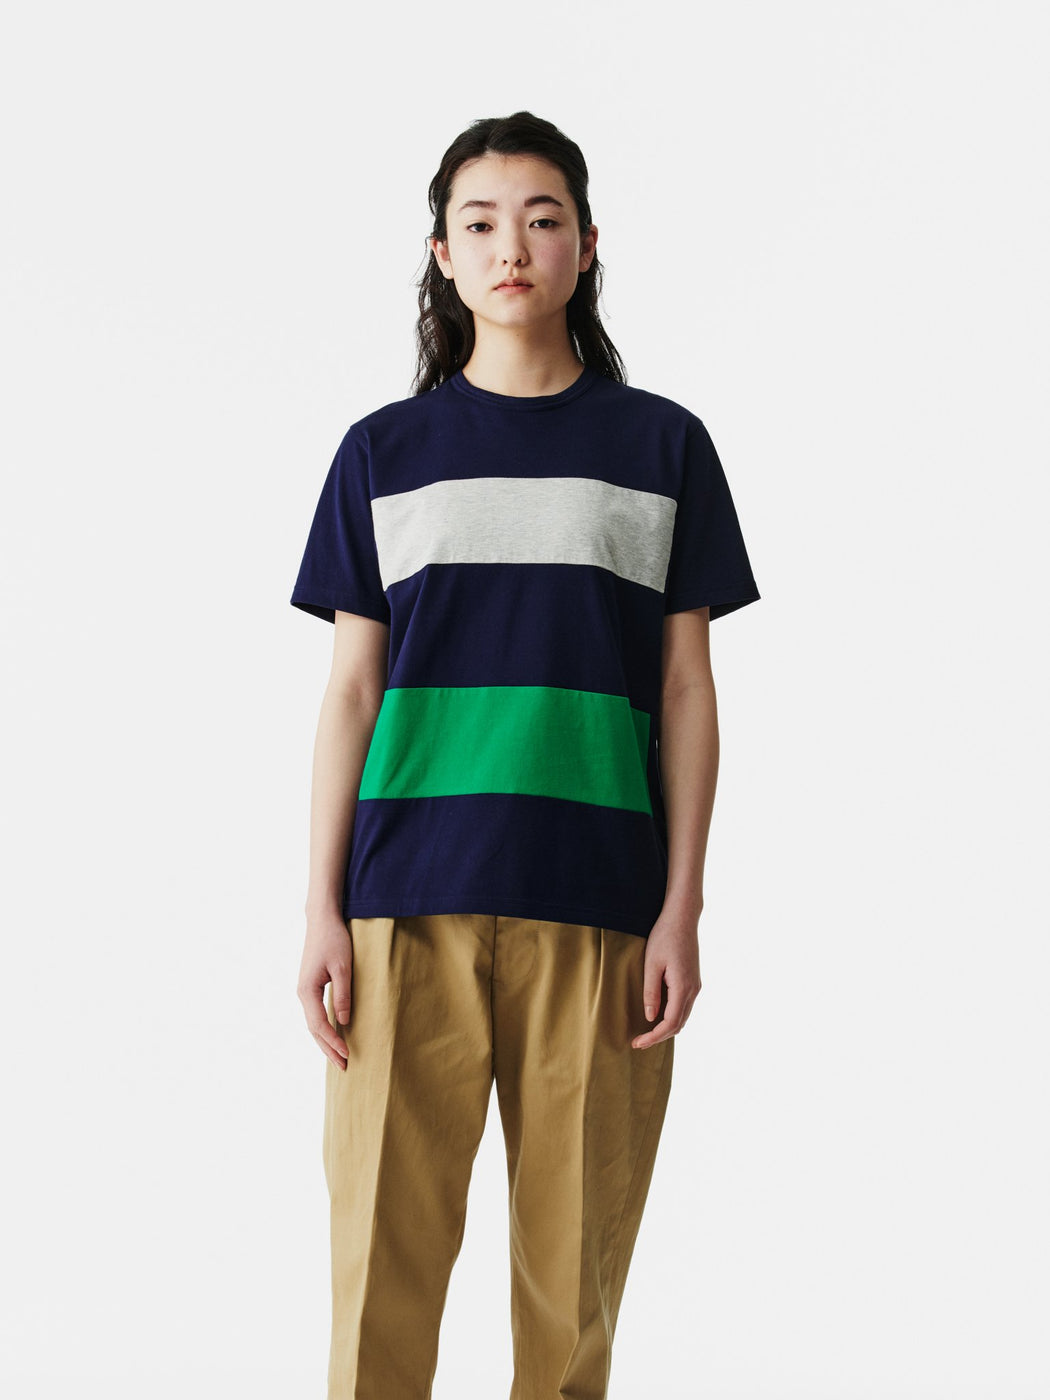 ALOYE Color Block Short Sleeve T-shirt Navy-Green